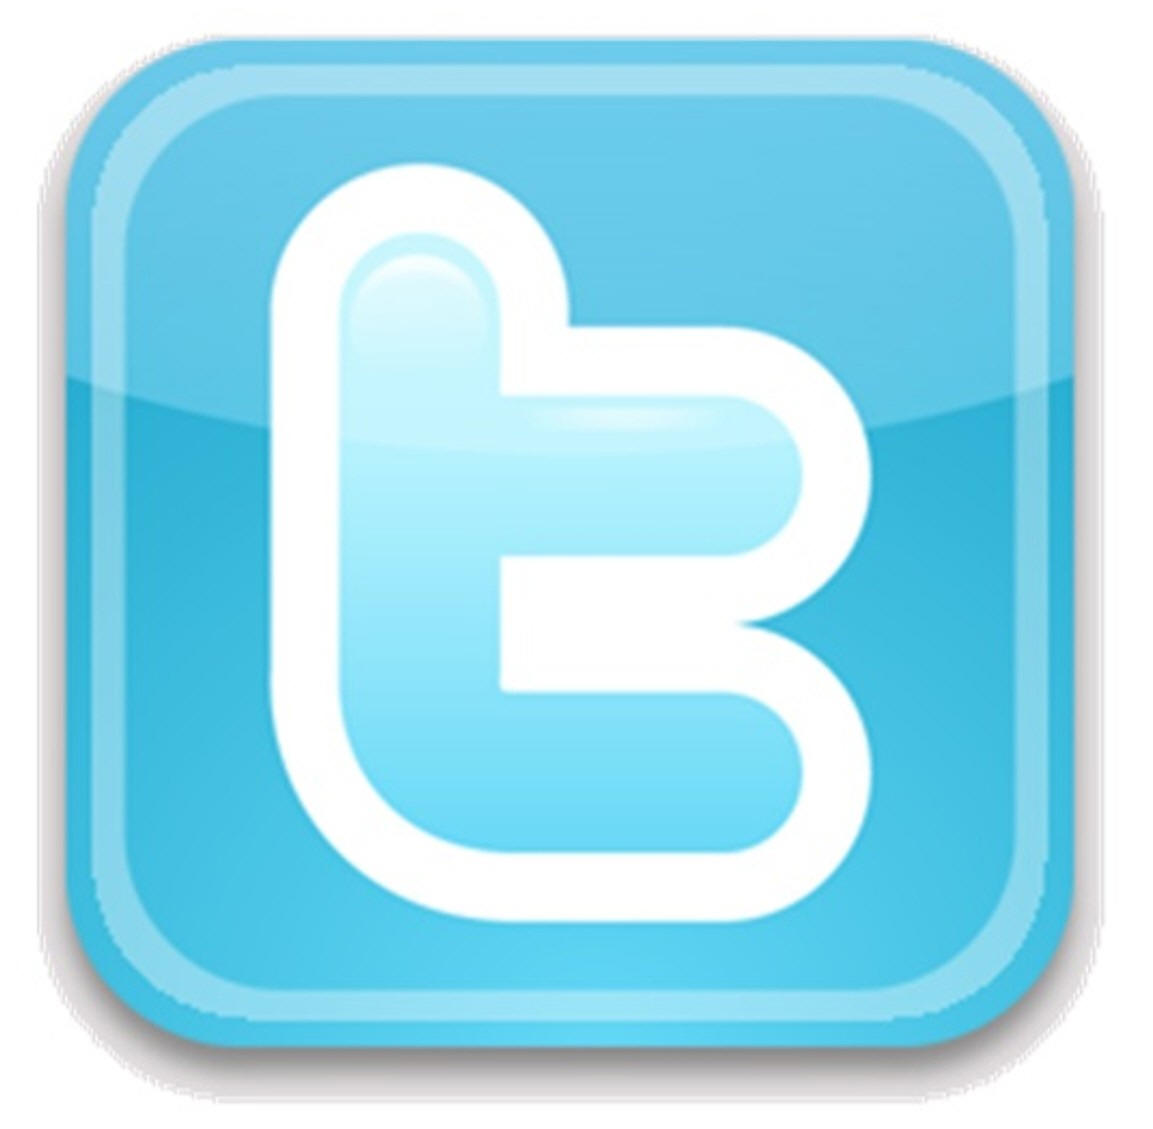 twitter_logo_kikkespulle.jpg